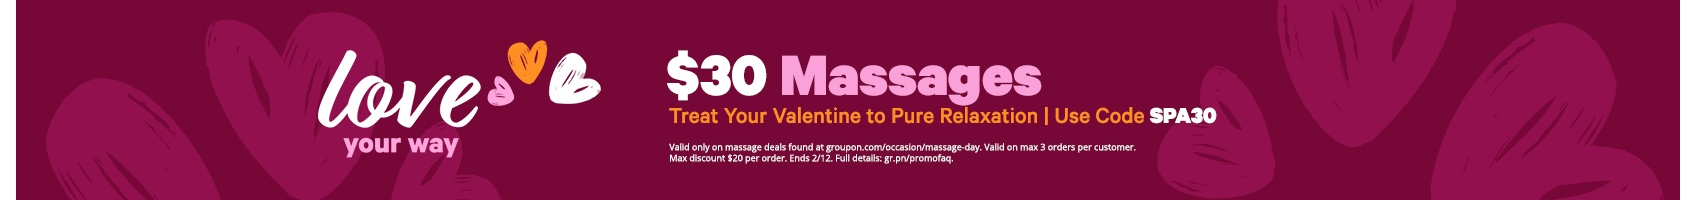 $30 Massages with code SPA30